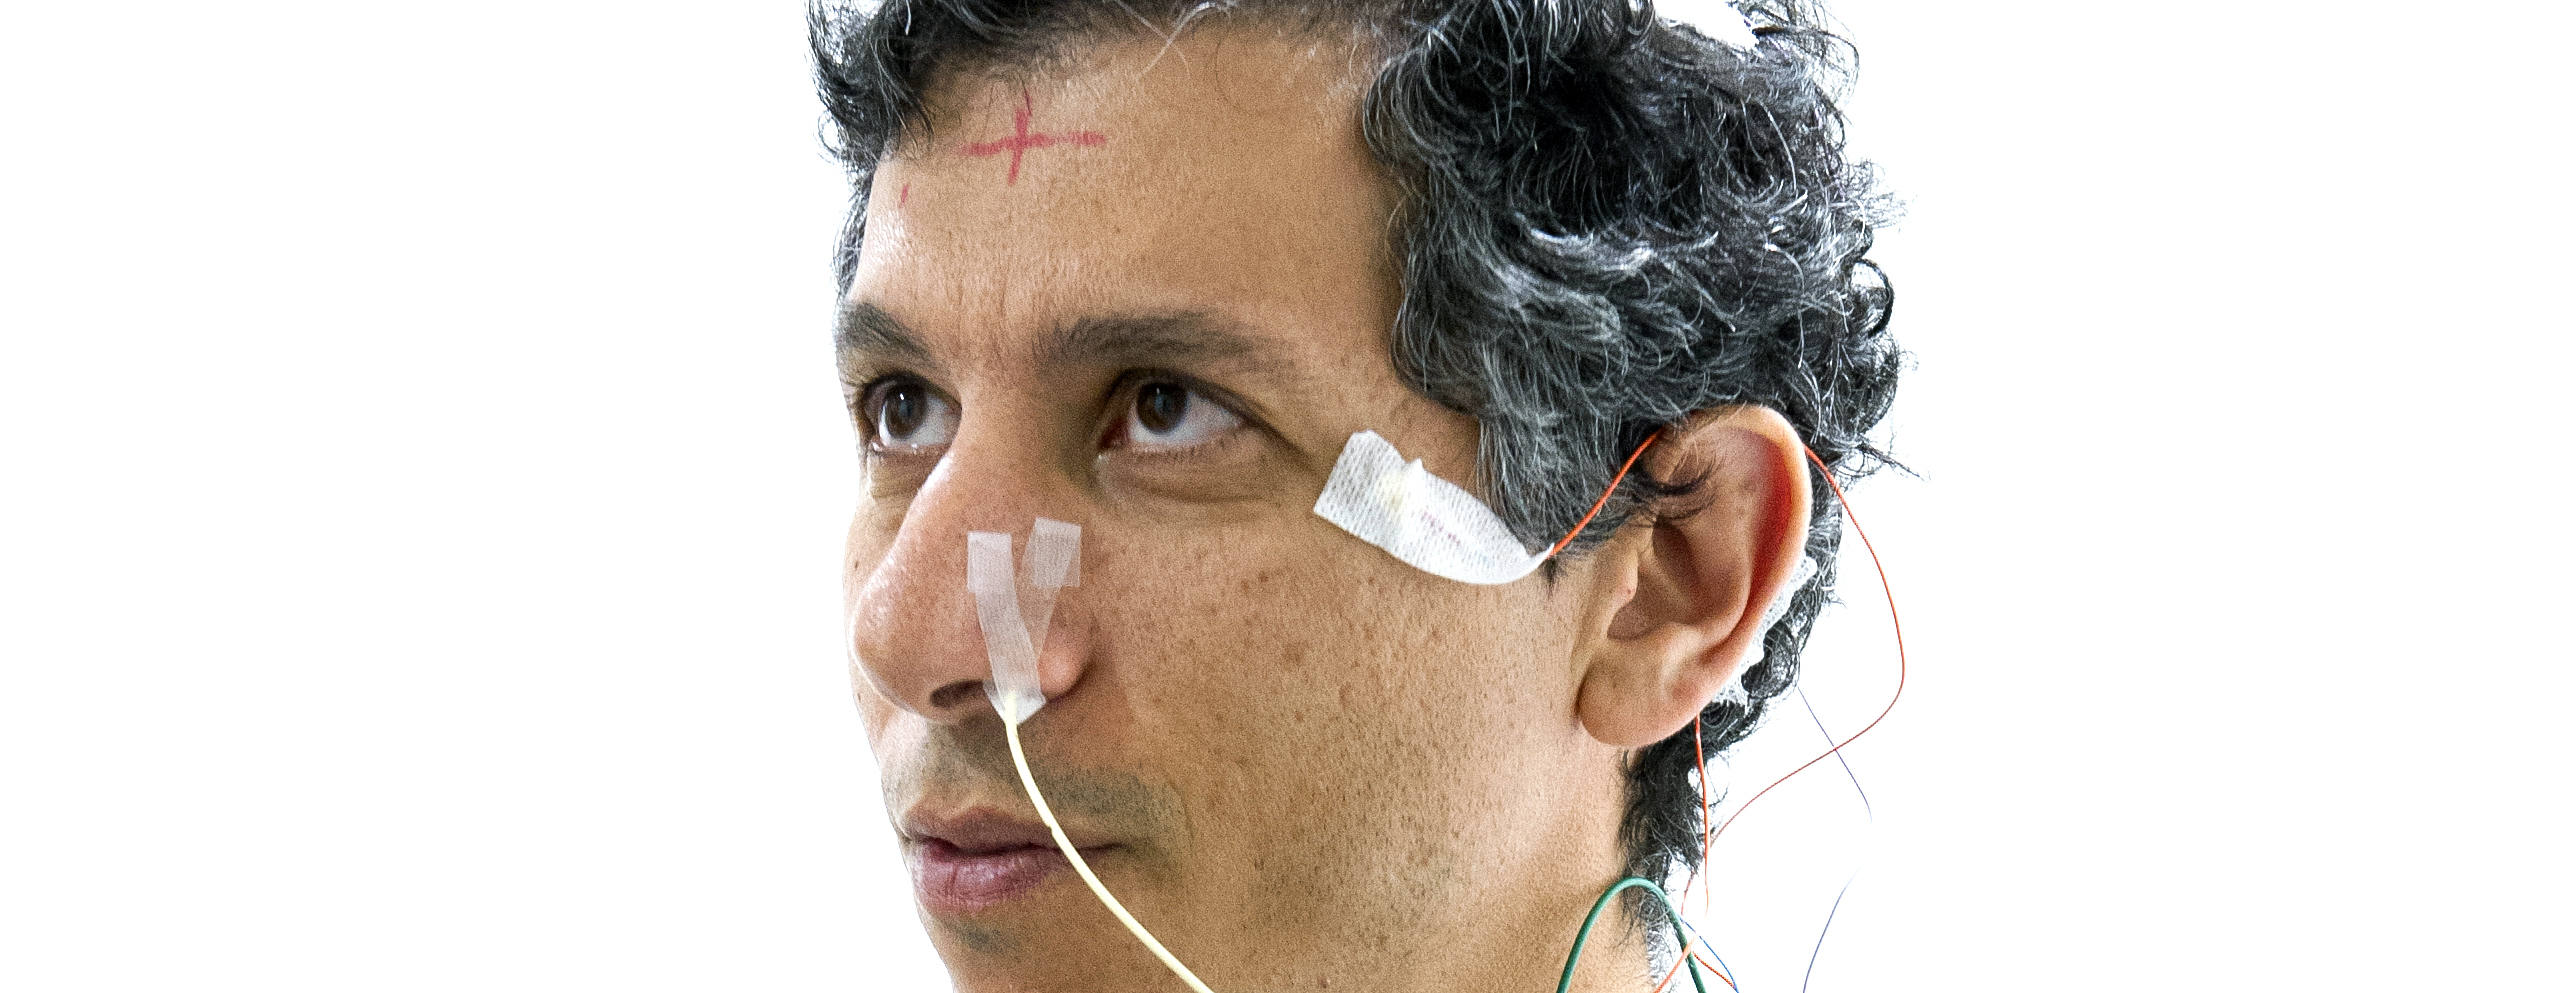 Research participant has sensors placed on temple and nose